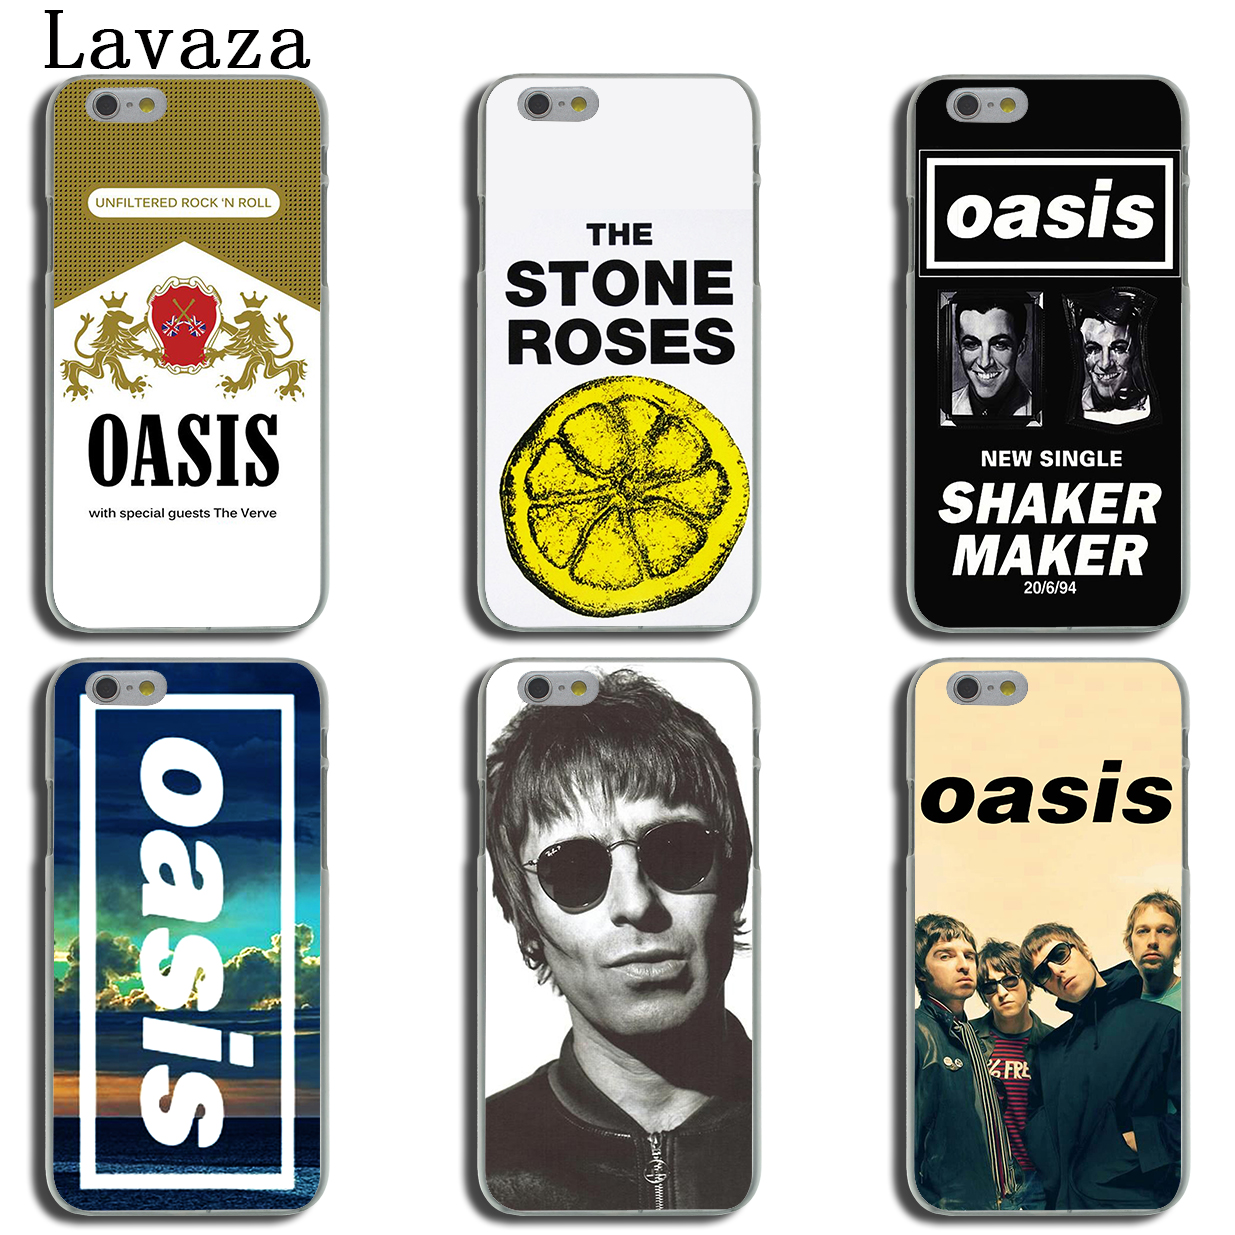 oasis iphone 6s plus case